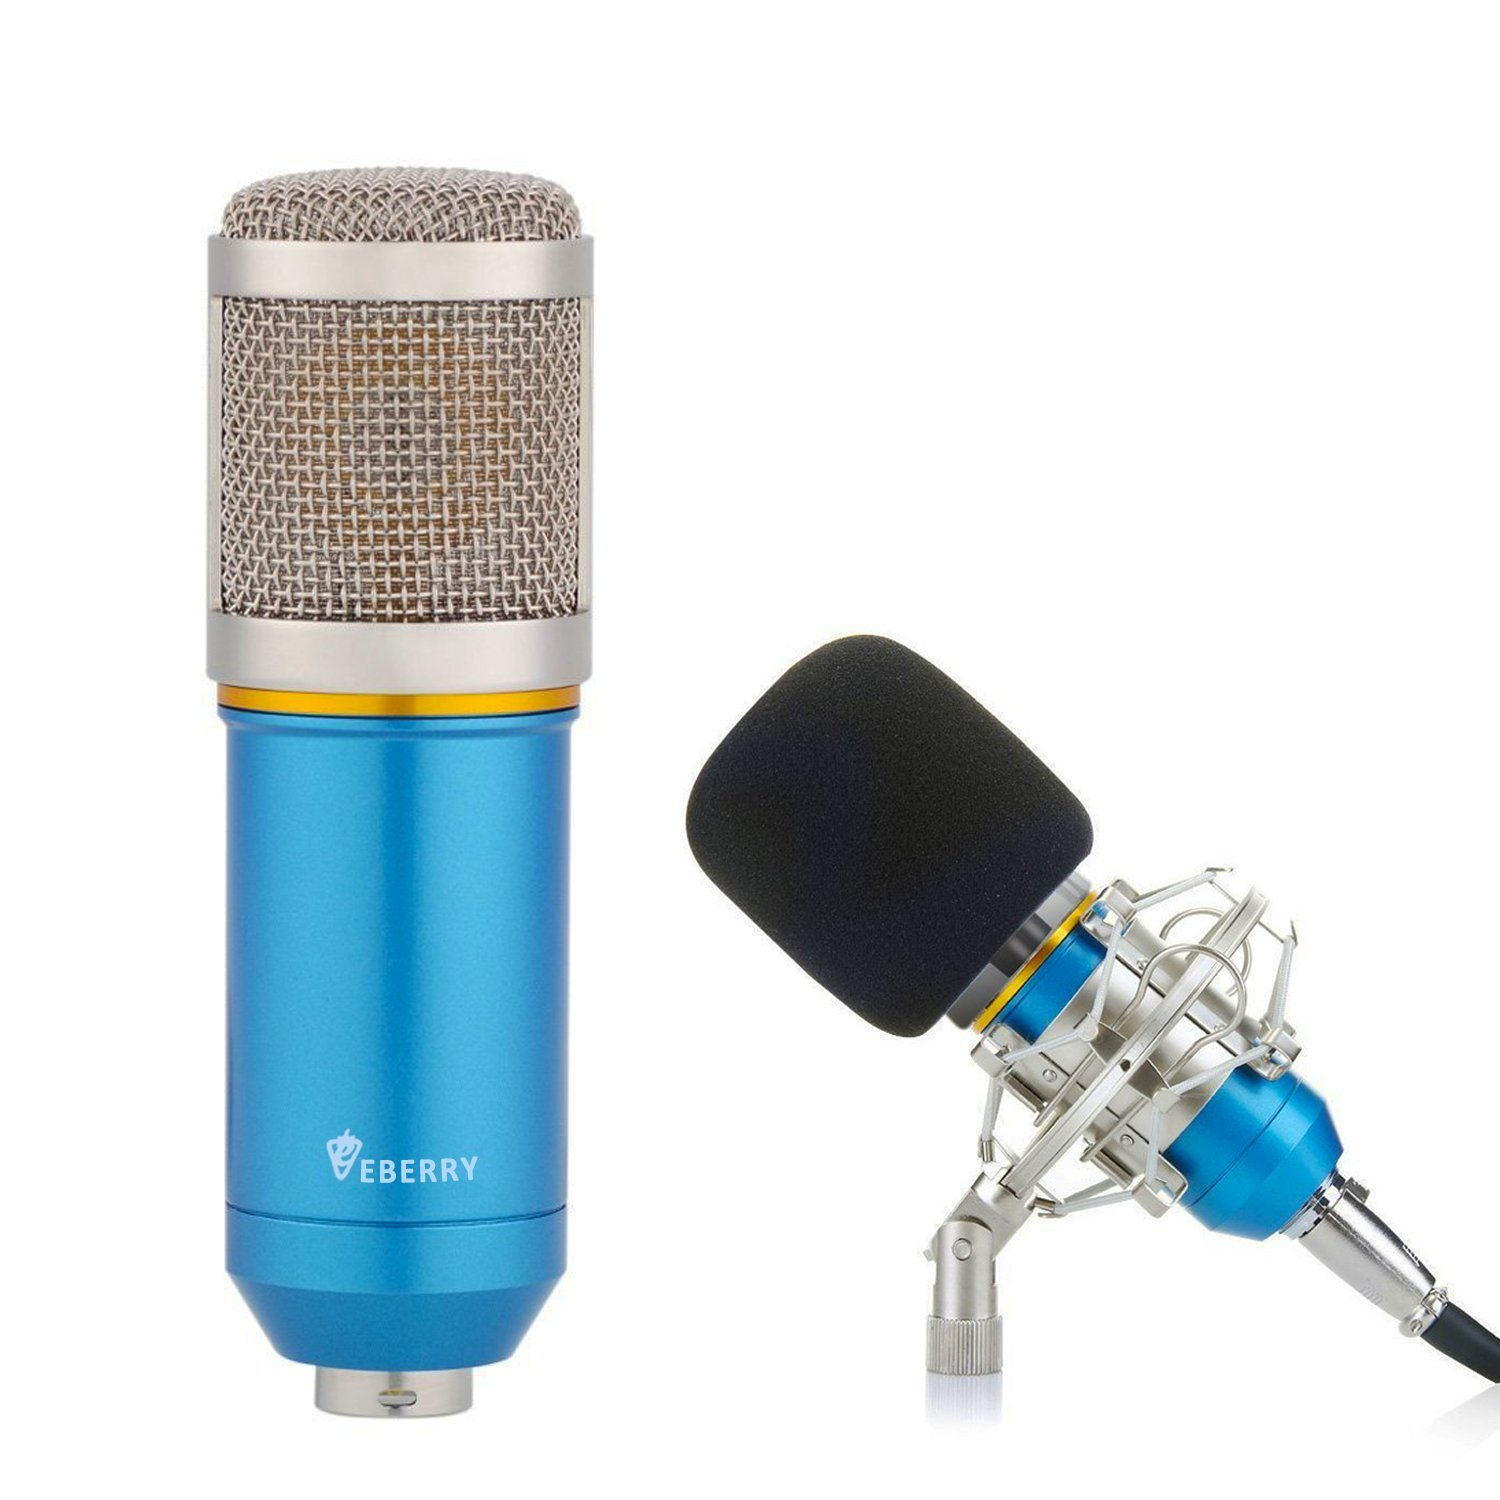 eBerry Condenser Microphone, Large Diaphragm Studio Broadcasting & Recording Vocal Condenser Mic with Shock Mount Holder Clip (Blue) by eBerry (Image #1)